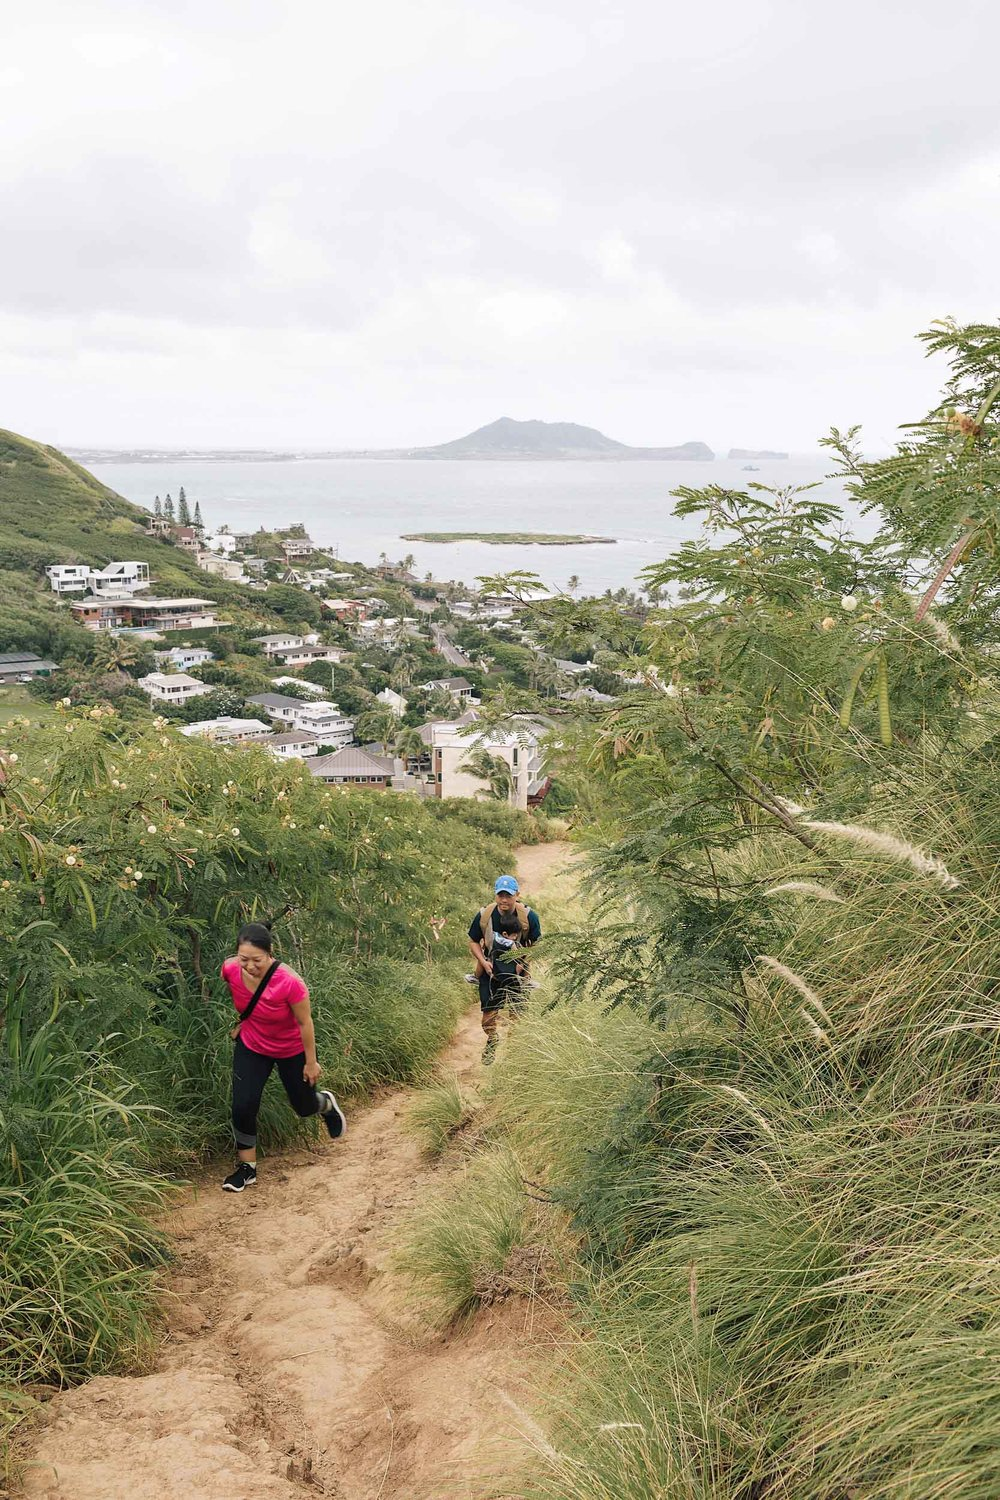 Hikers about halfway up the Pillbox hike